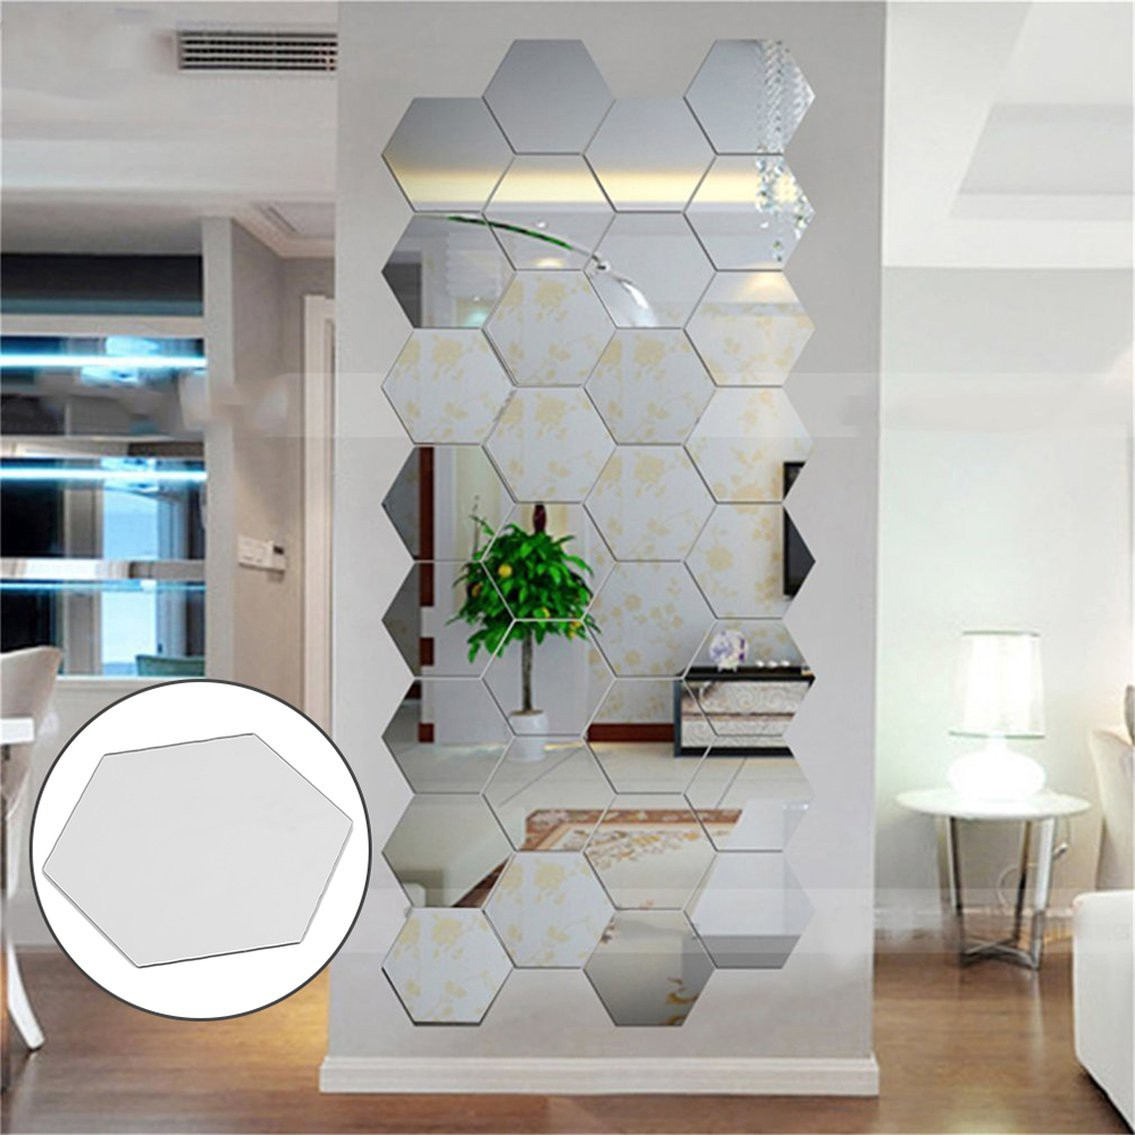 Just Hexagonal 3d Mirrors Wall Stickers Home Decor Living Room Mirror Wall Sticker Shopee Indonesia